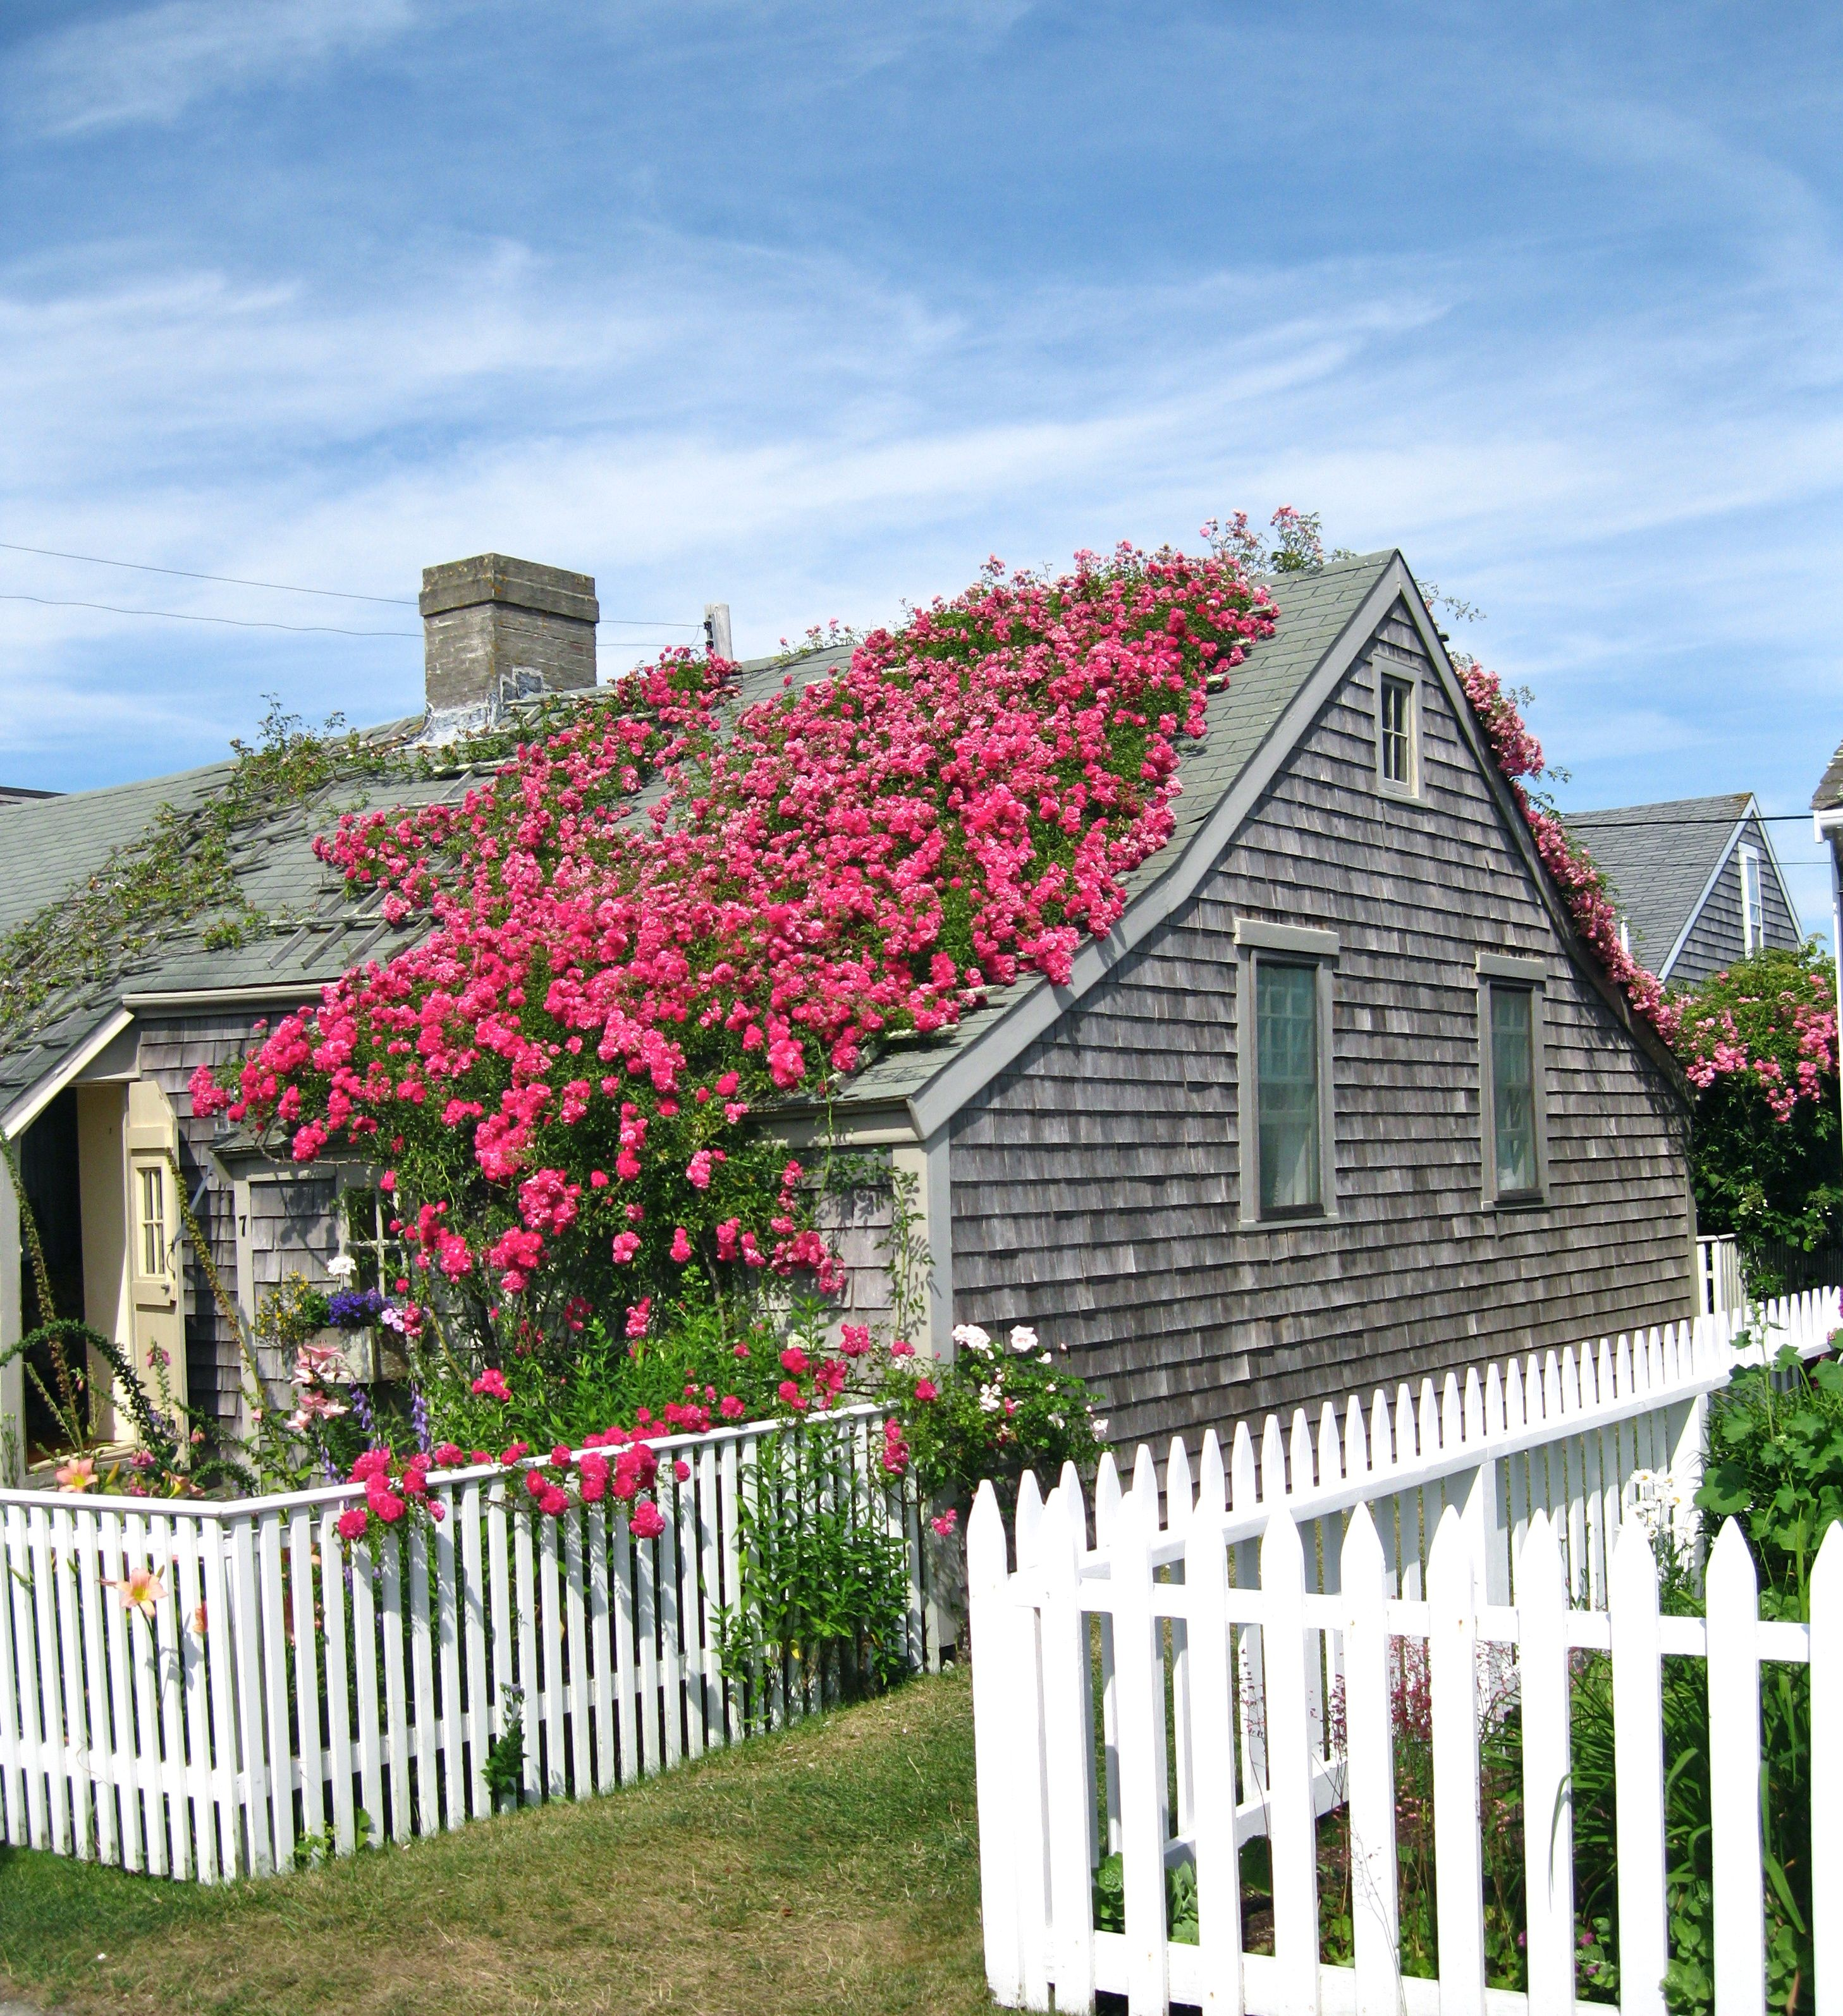 heritage cottage rose pin sea the of captain cottages pinterest island captains architectural img roses covered houses nantucket and